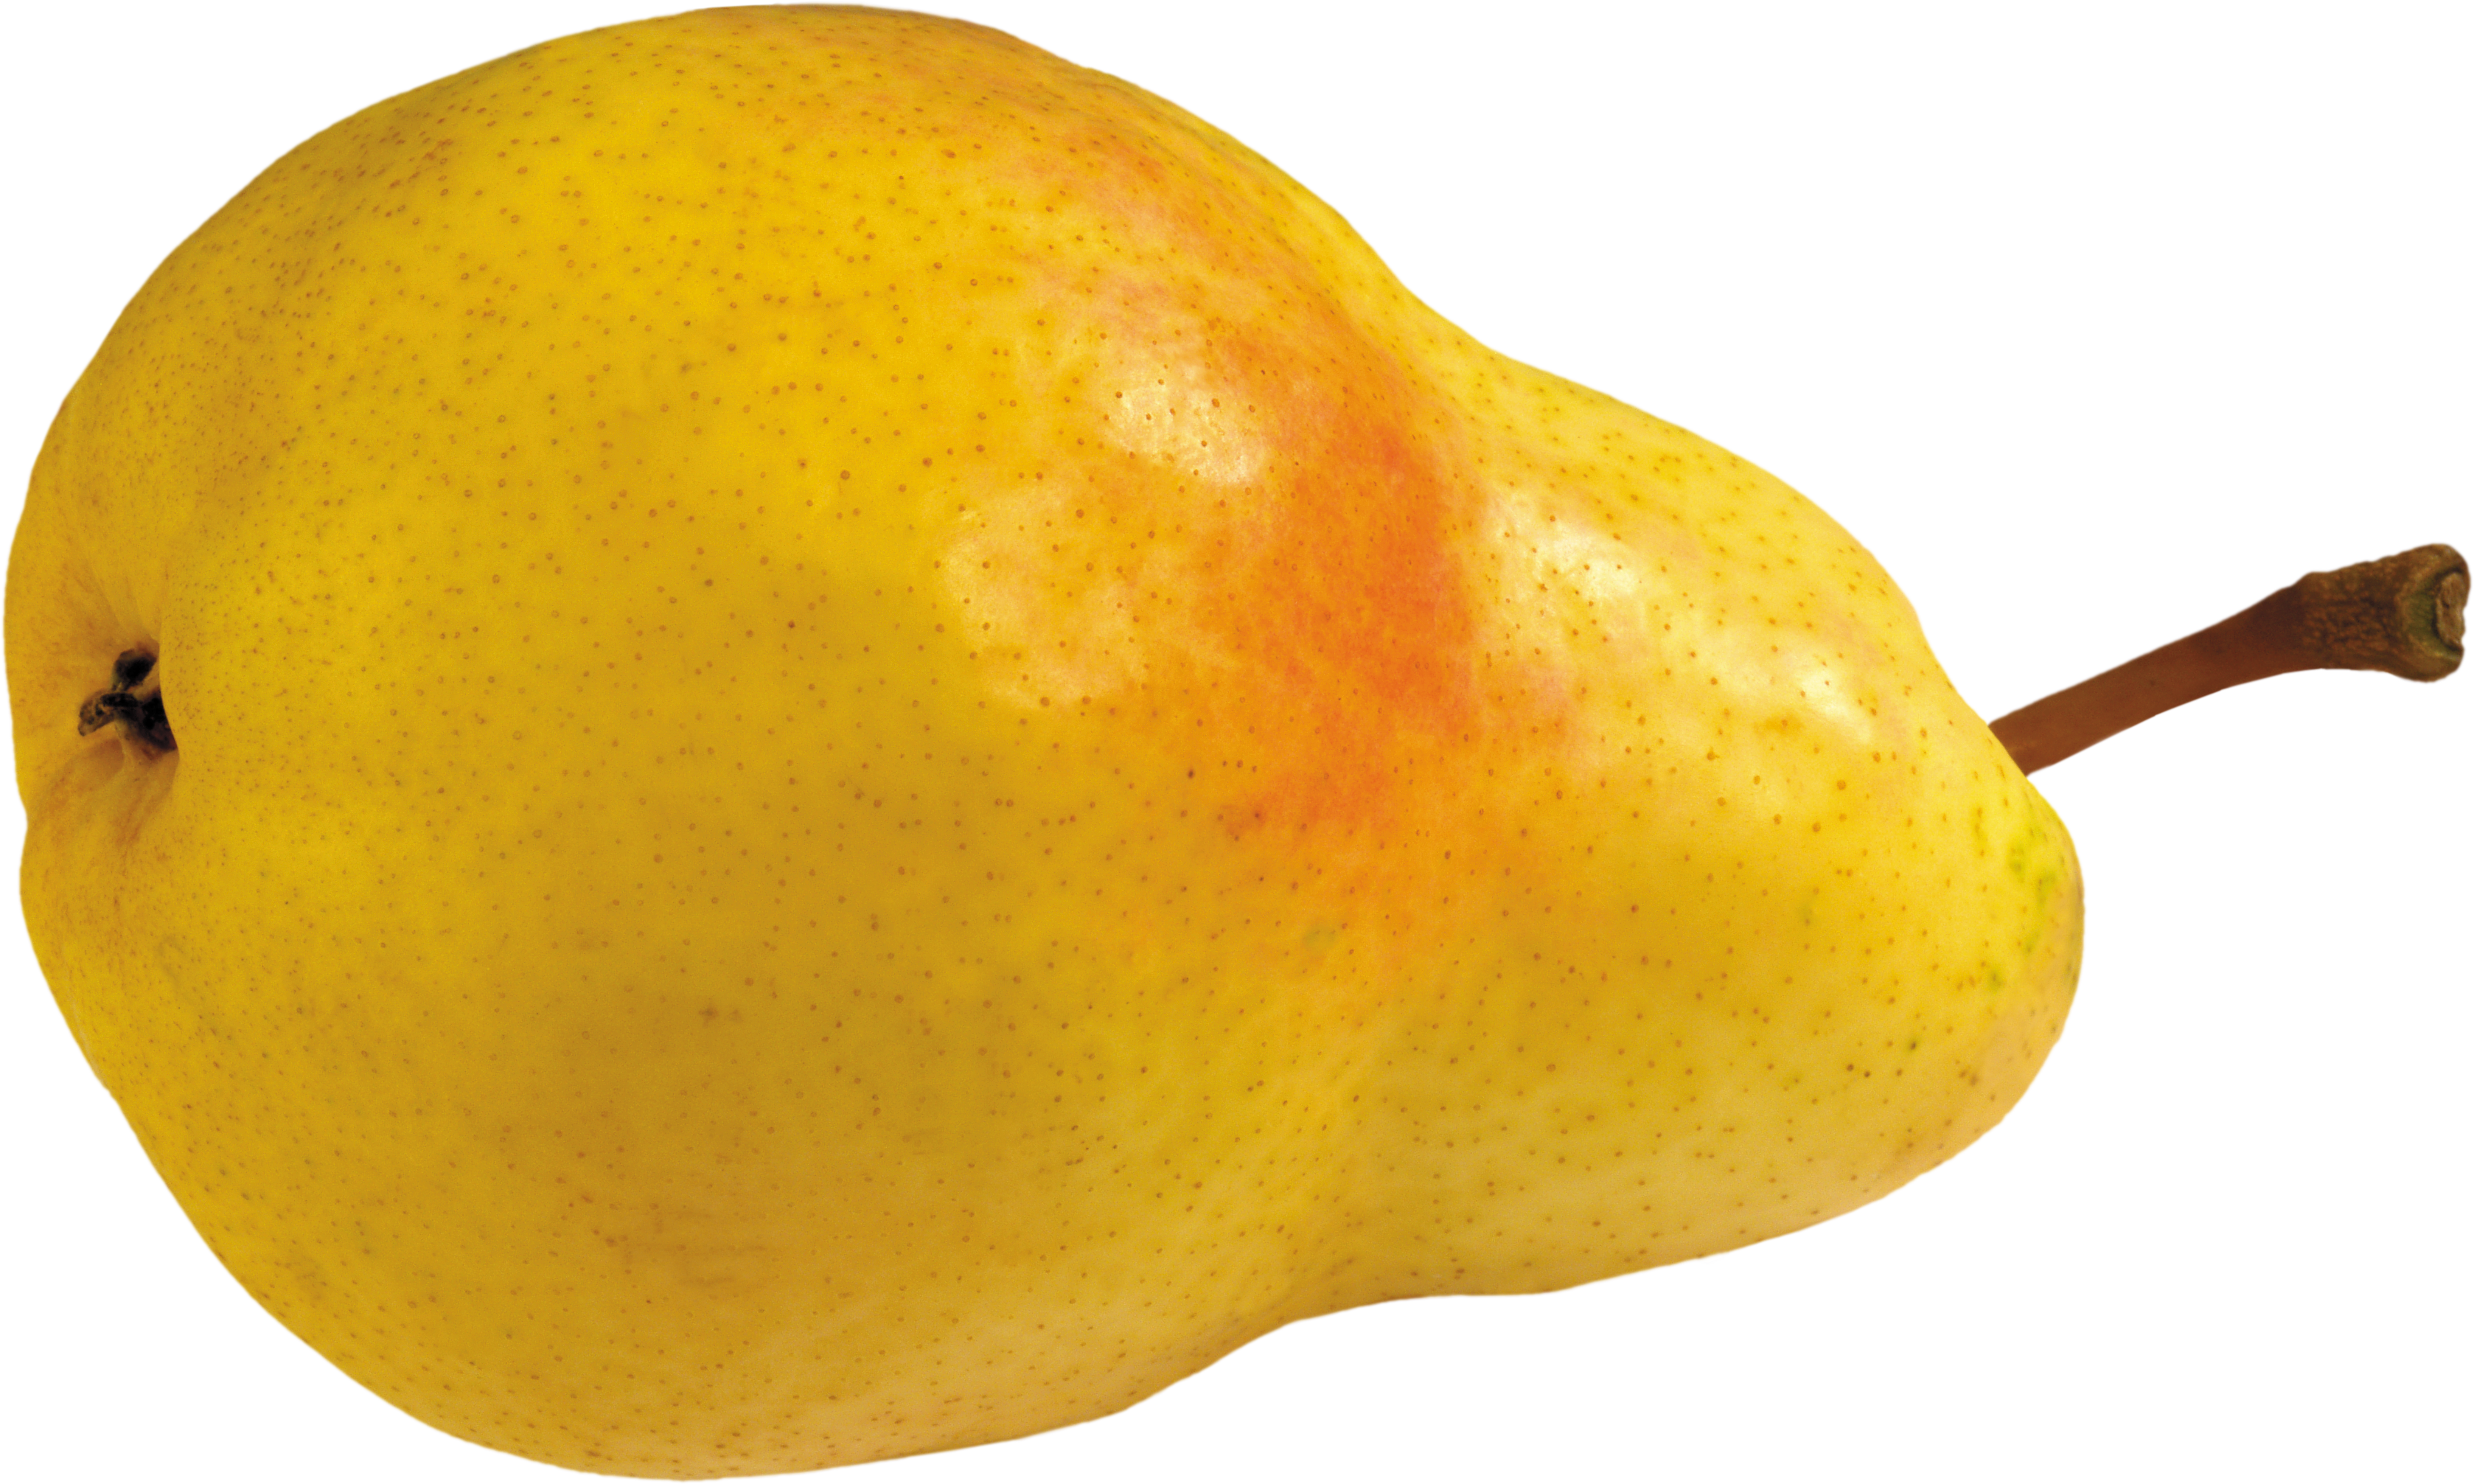 Png image . Pear clipart pear shape